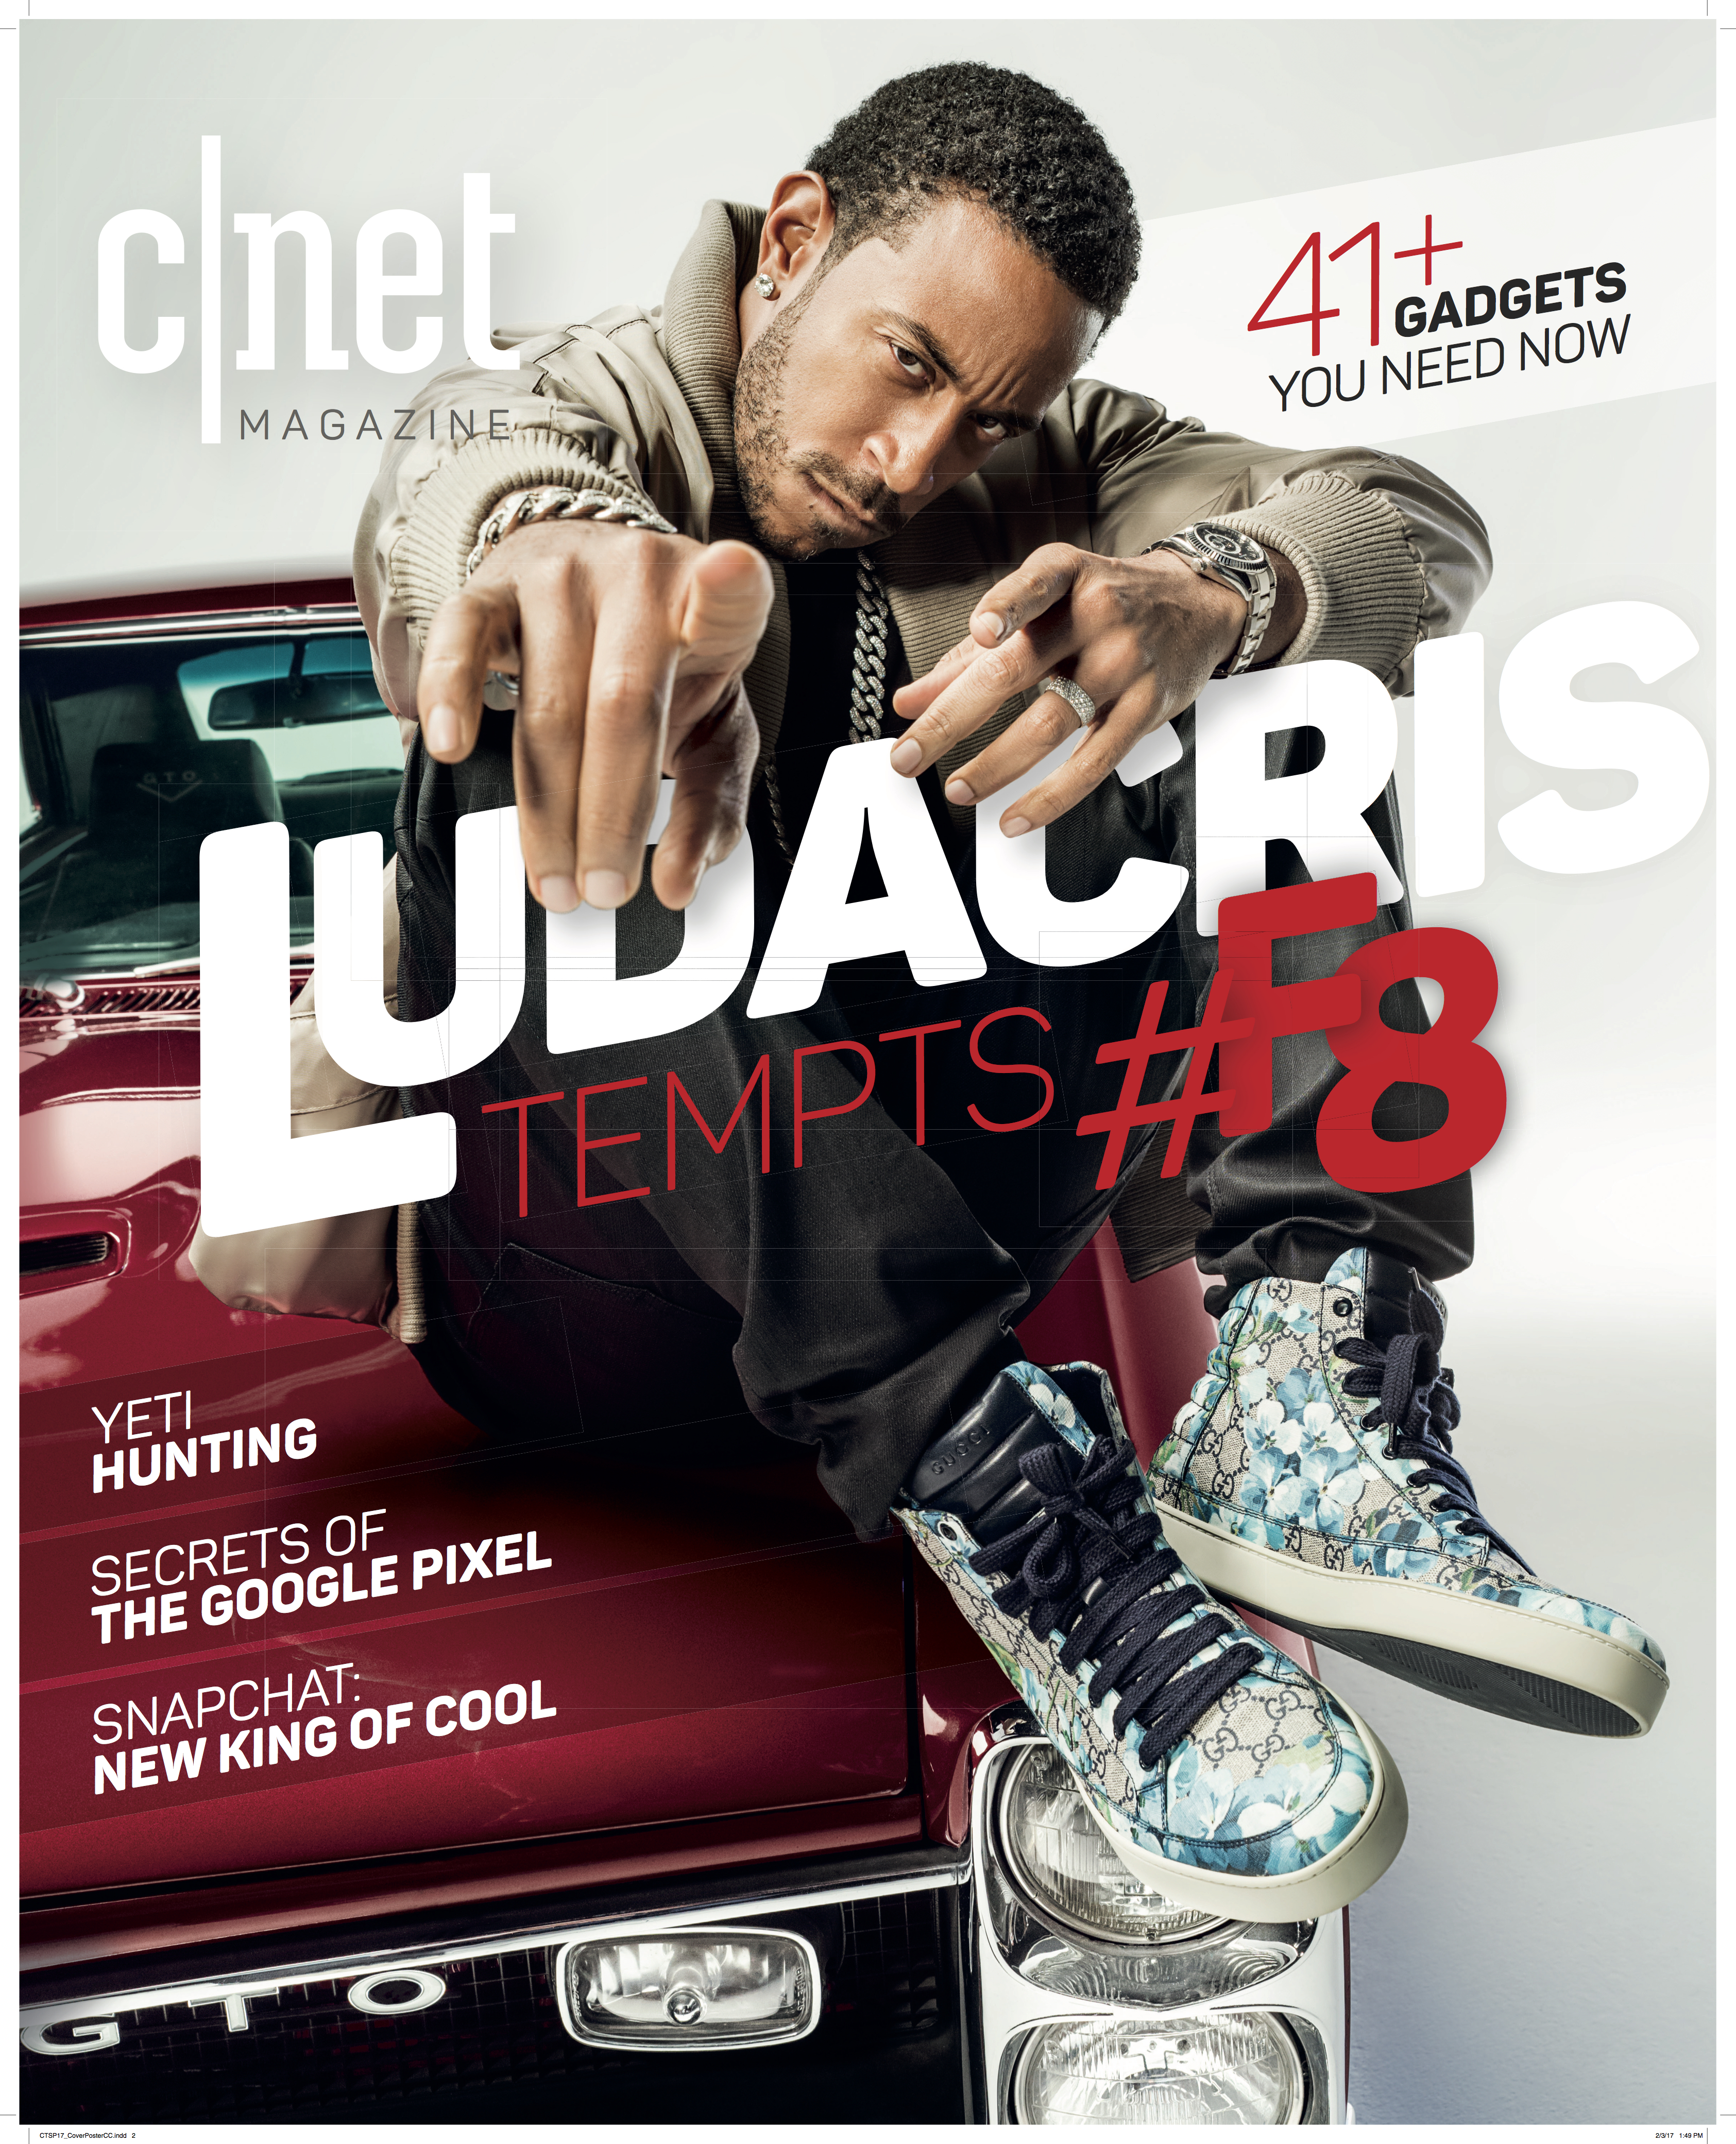 Ludacris on the cover of CNET Magazine